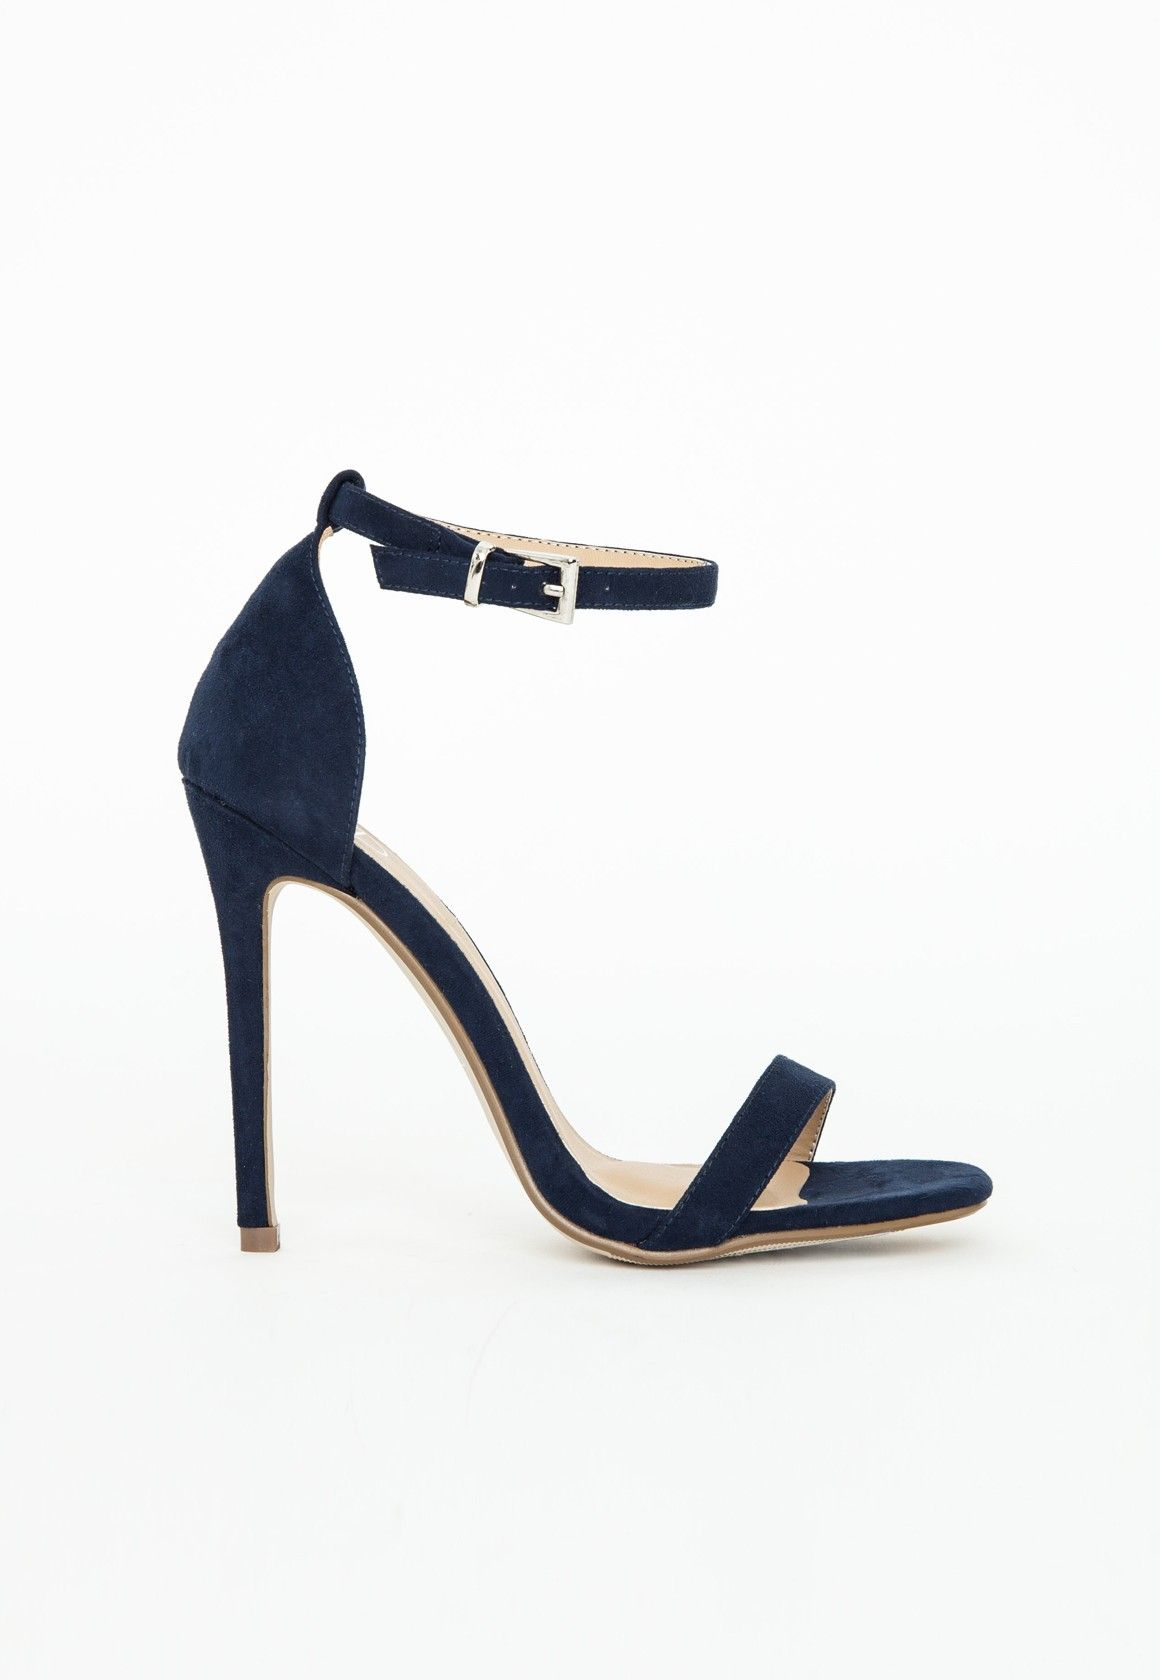 Barely There Heeled Sandals Navy Faux Suede - Shoes - High Heels ...